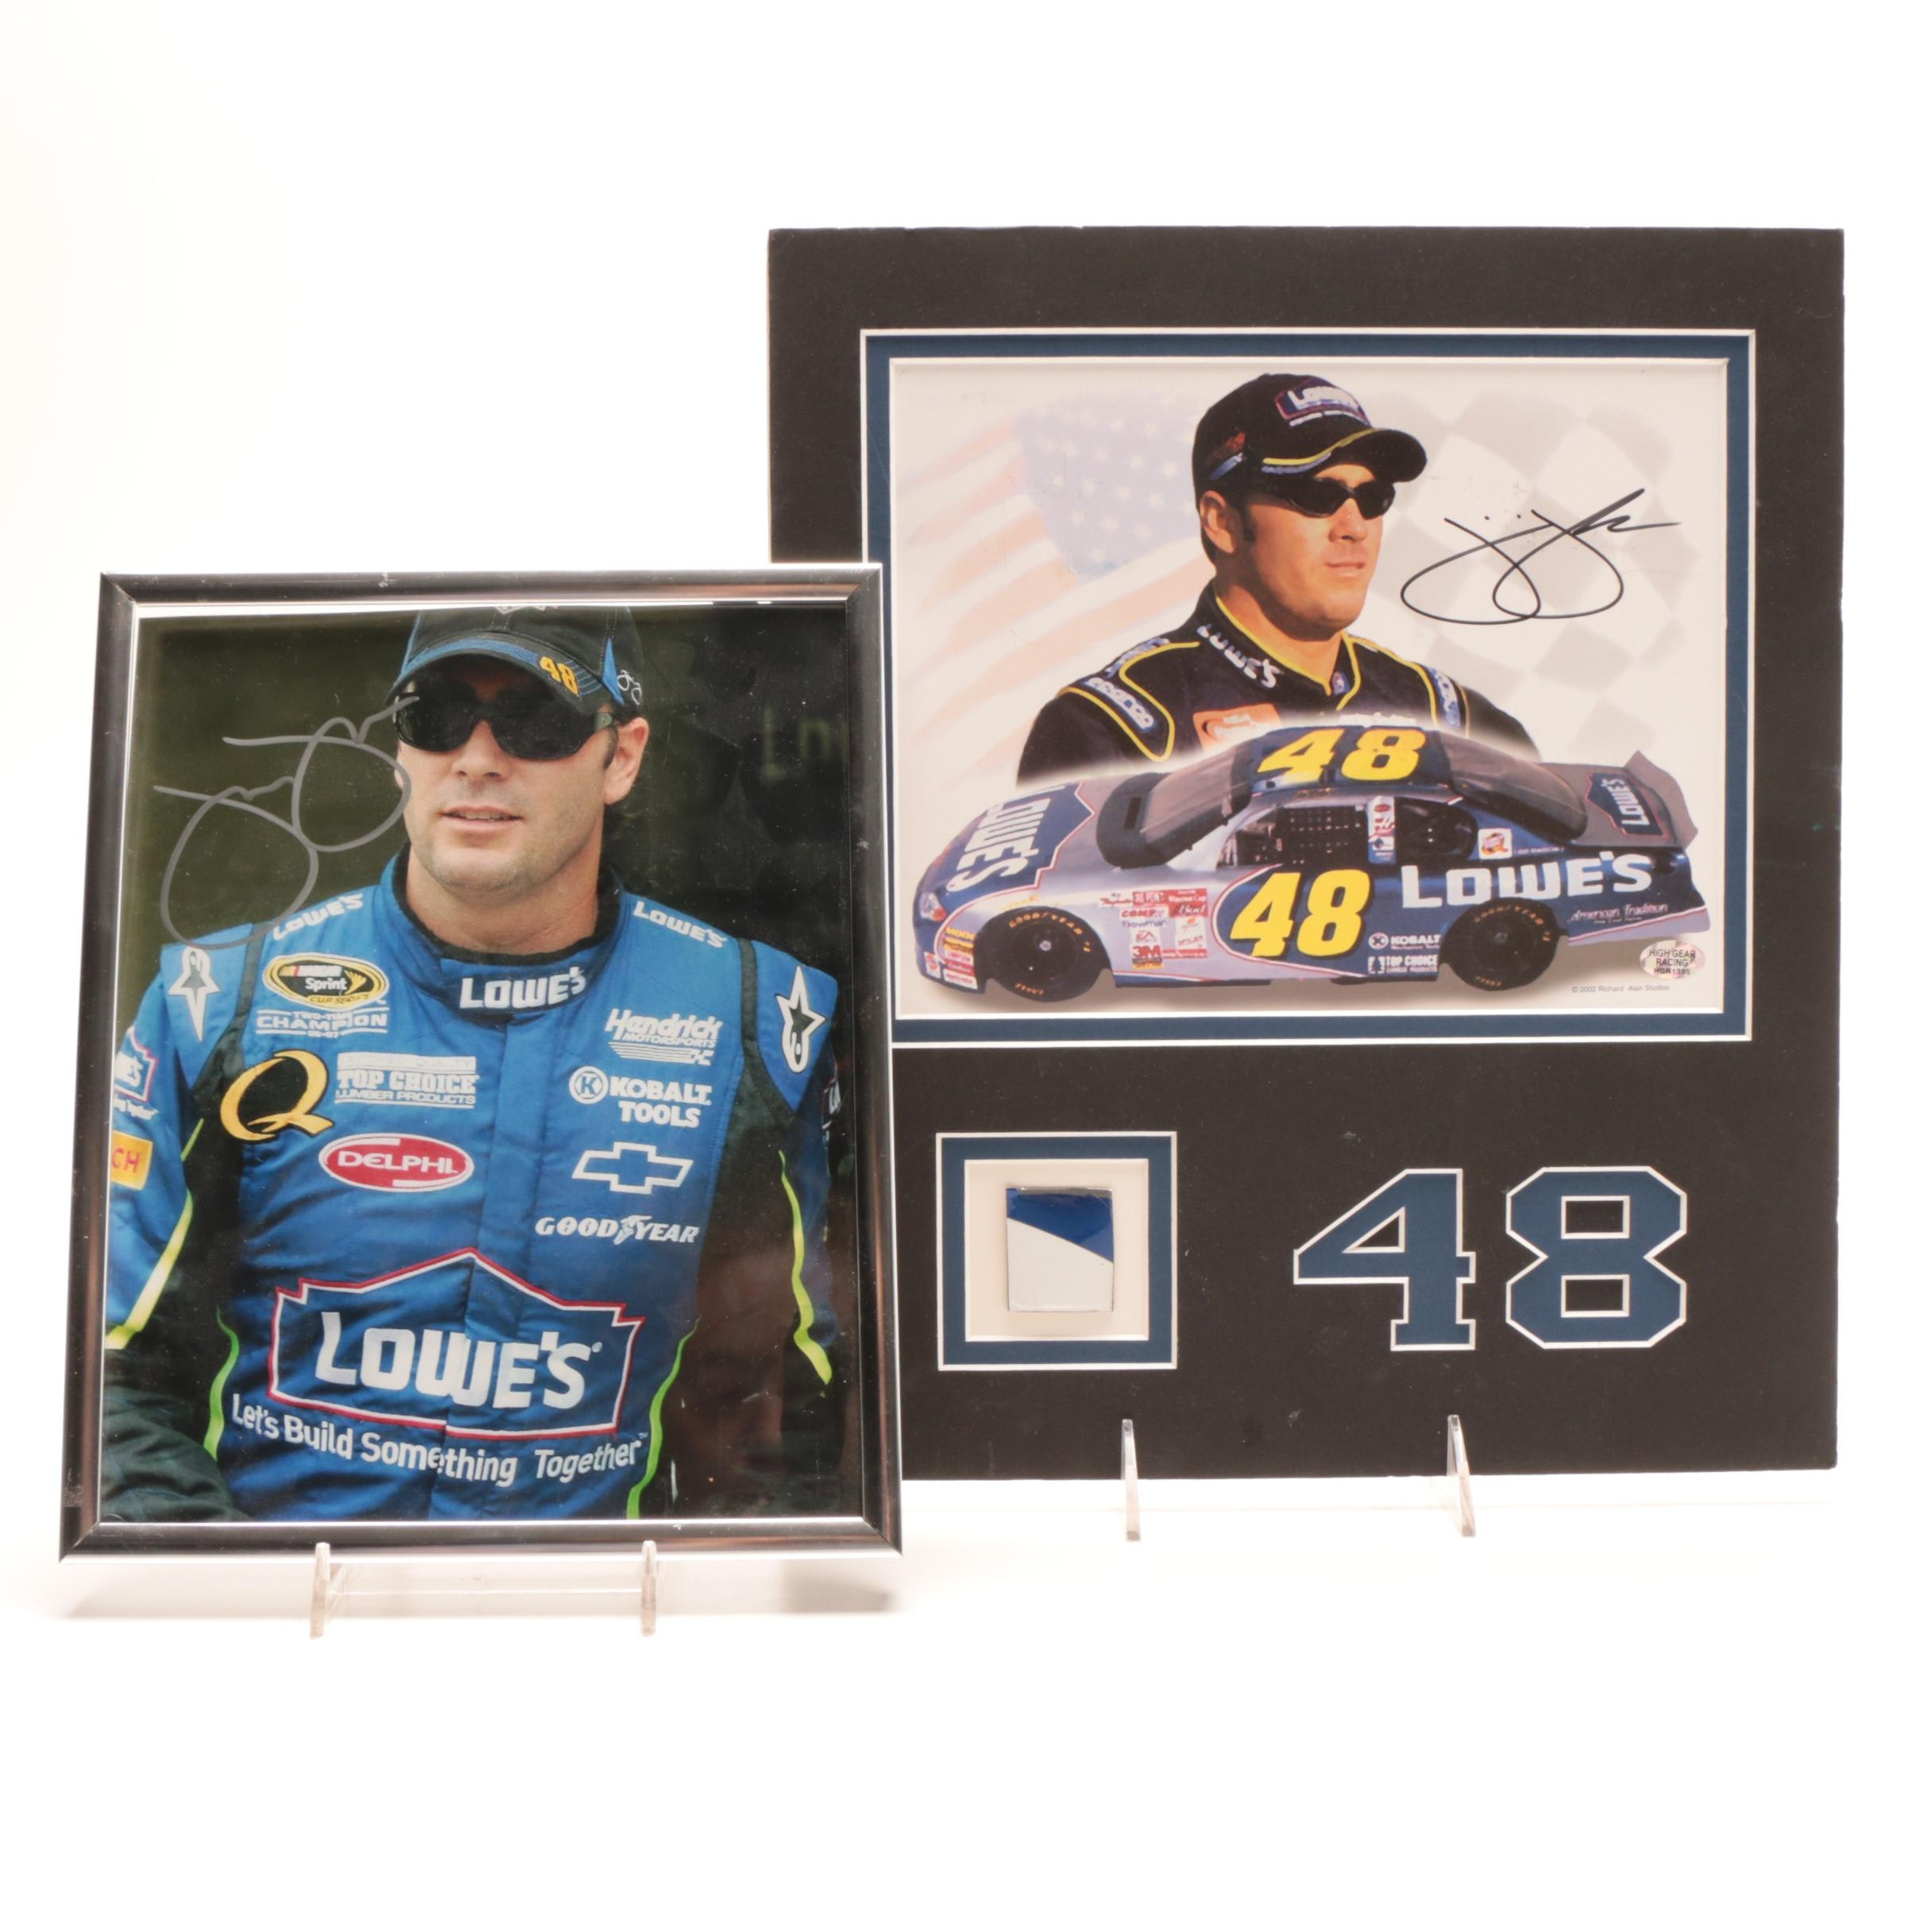 Two Jimmy Johnson Star NASCAR Driver Signed Auto Racing Displays